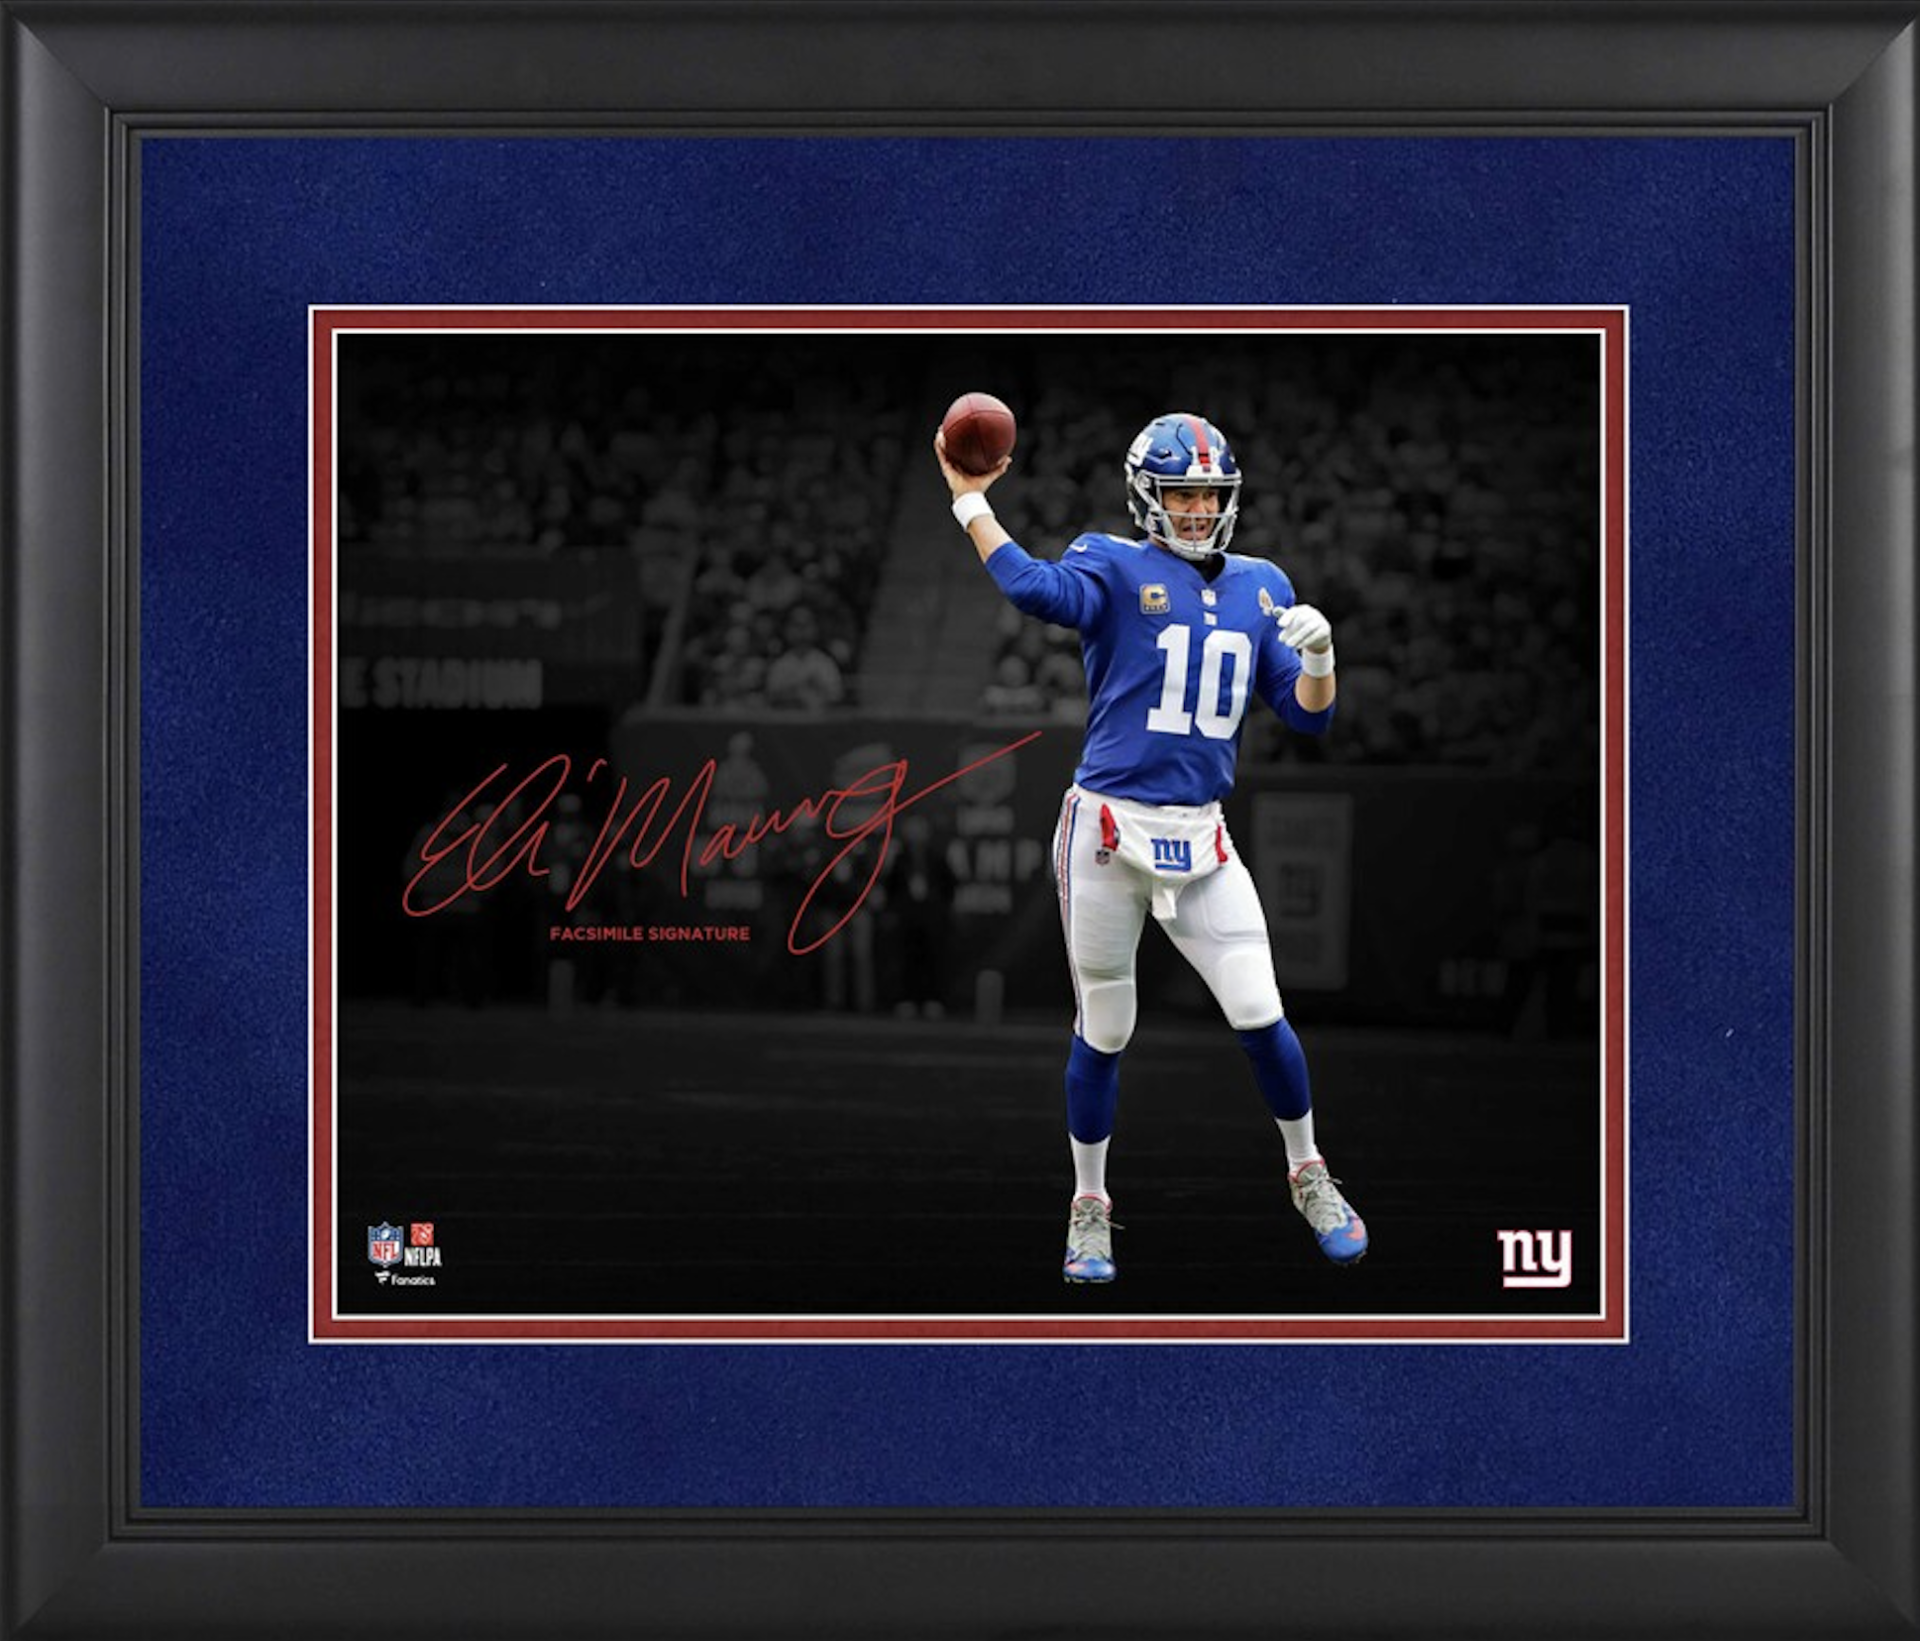 Eli Manning New York Giants Framed 11″ x 14″ Spotlight Photograph – Facsimile Signature